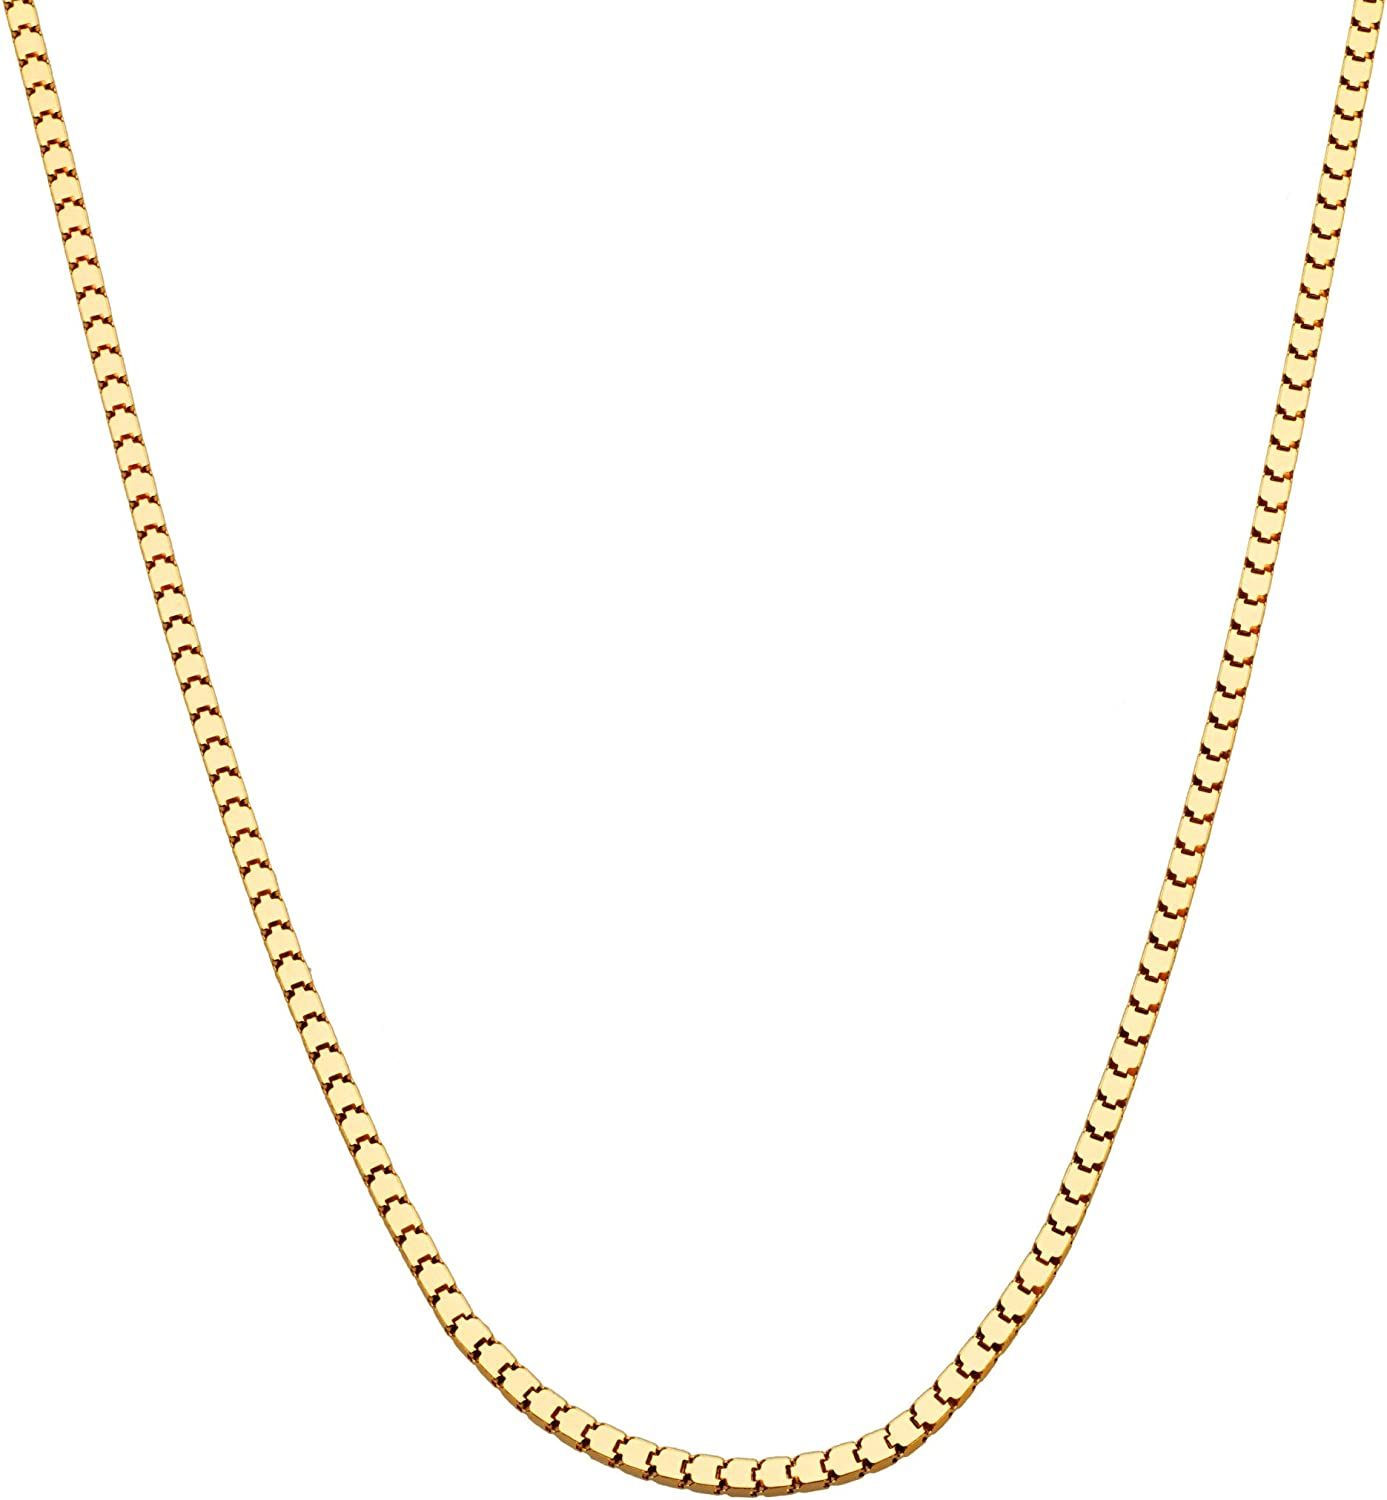 "Miabella 18K Gold Over Sterling Silver Italian Thin 1.6mm or 2.2mm Square Venetian Mirror Box Link Chain Necklace for Men Women, 16"", 18"", 20"", 22"", 24"", 26"", 30"""